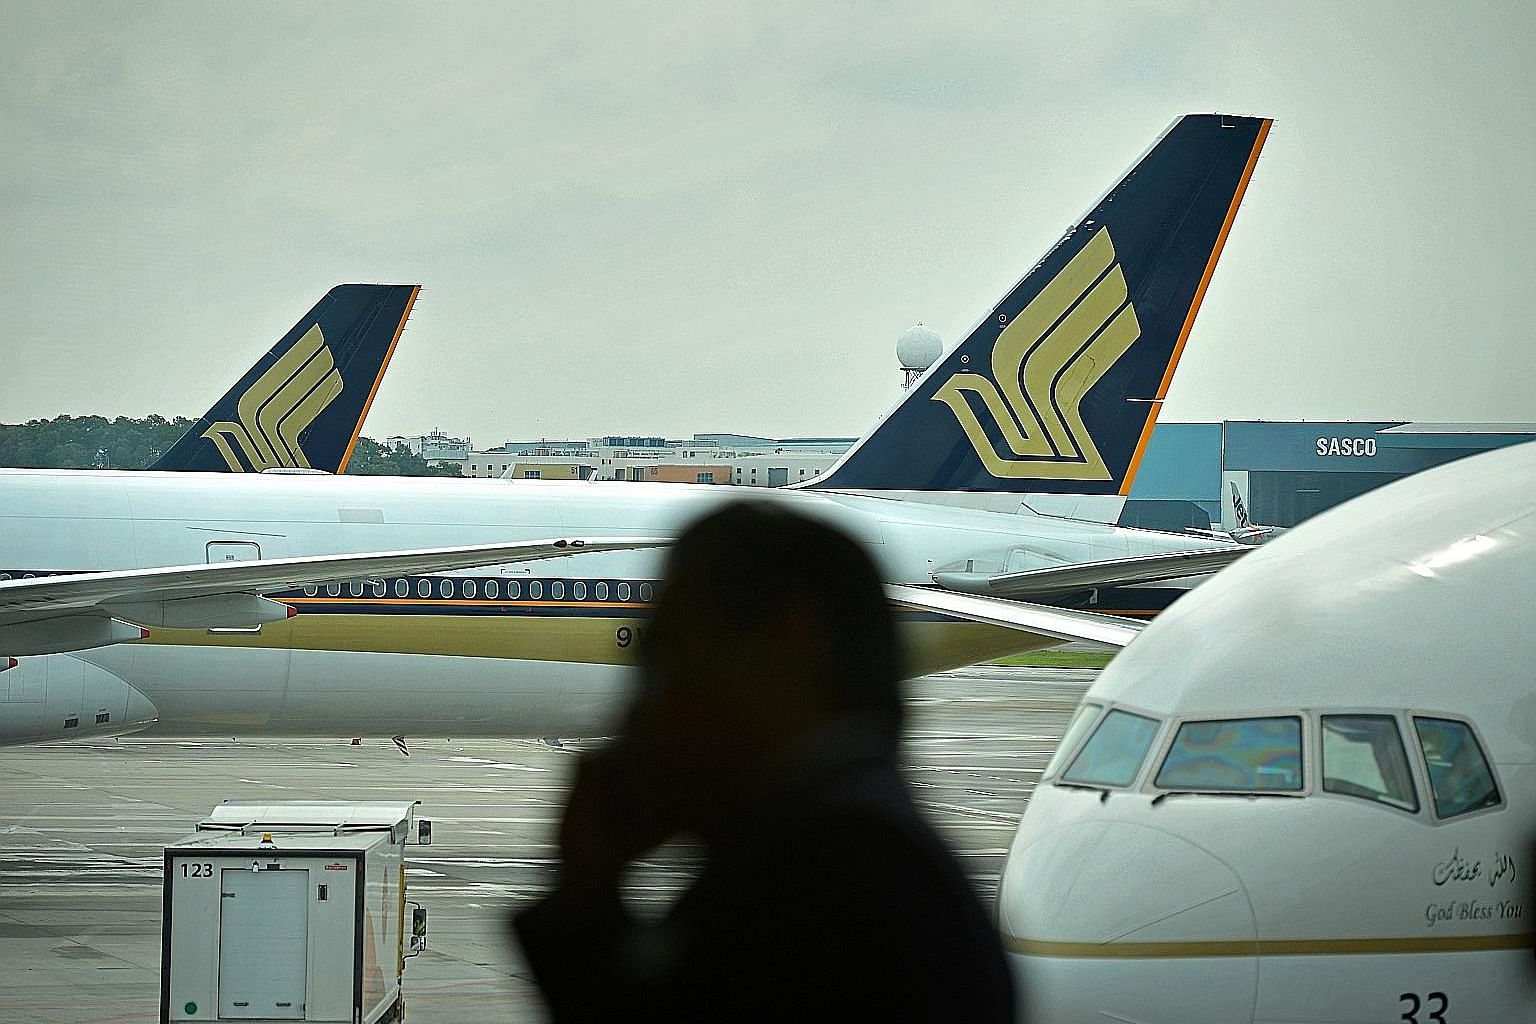 SIA could offer flights that get passengers to their destination in the fastest and most direct way possible. Another draw would also be flights that arrive and depart at less unearthly hours.